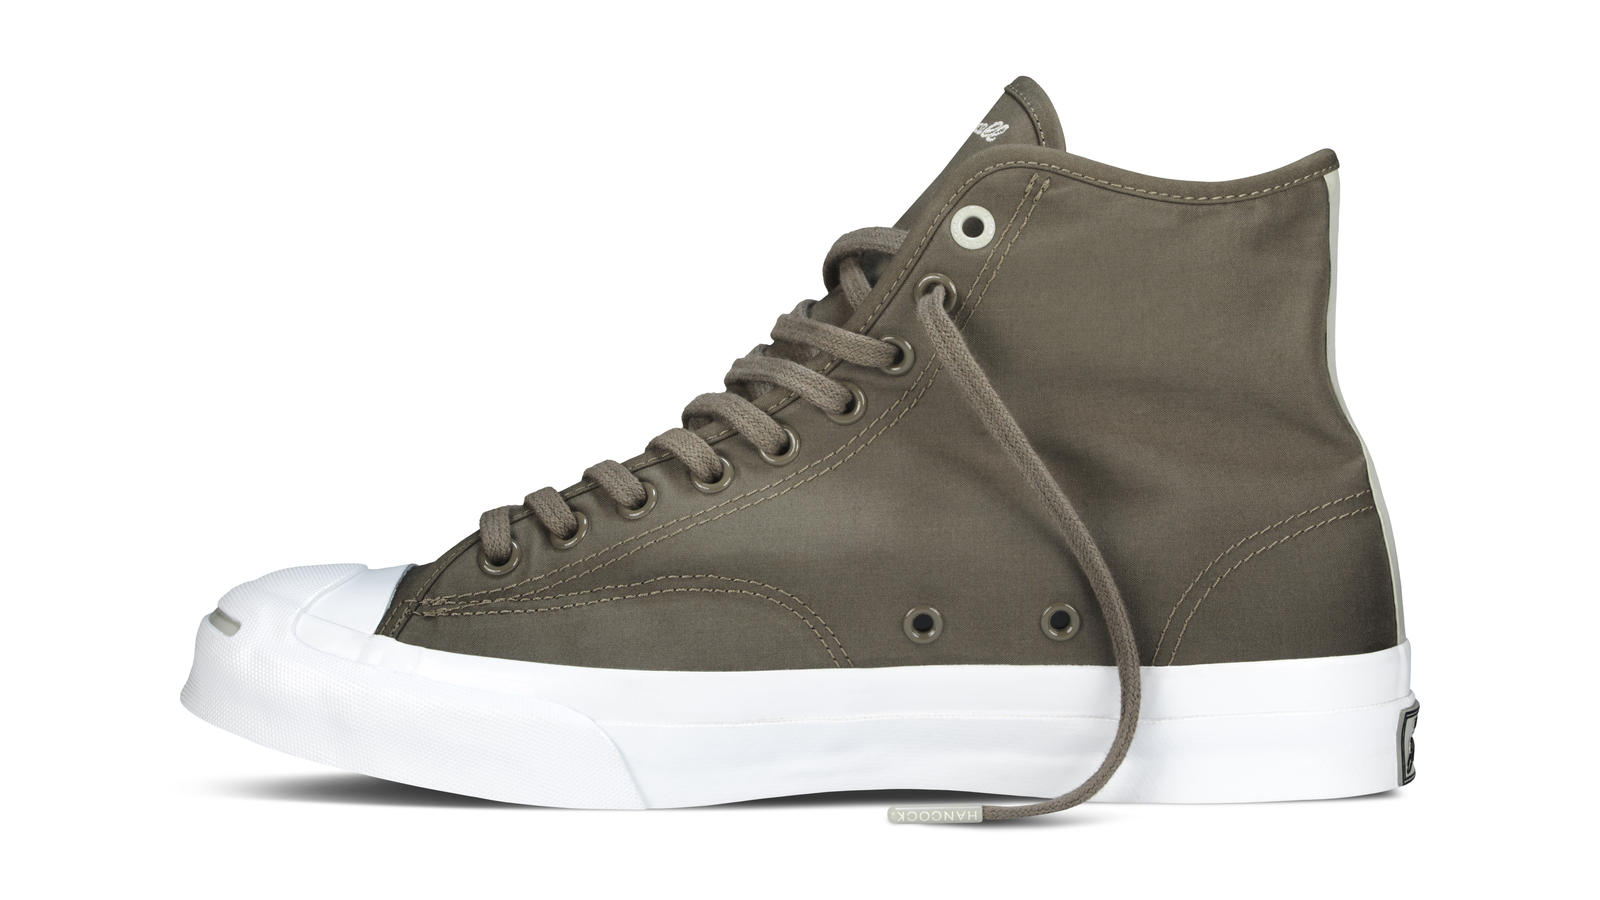 Converse Jack Purcell X Hancock Vulcanised Articles forecasting